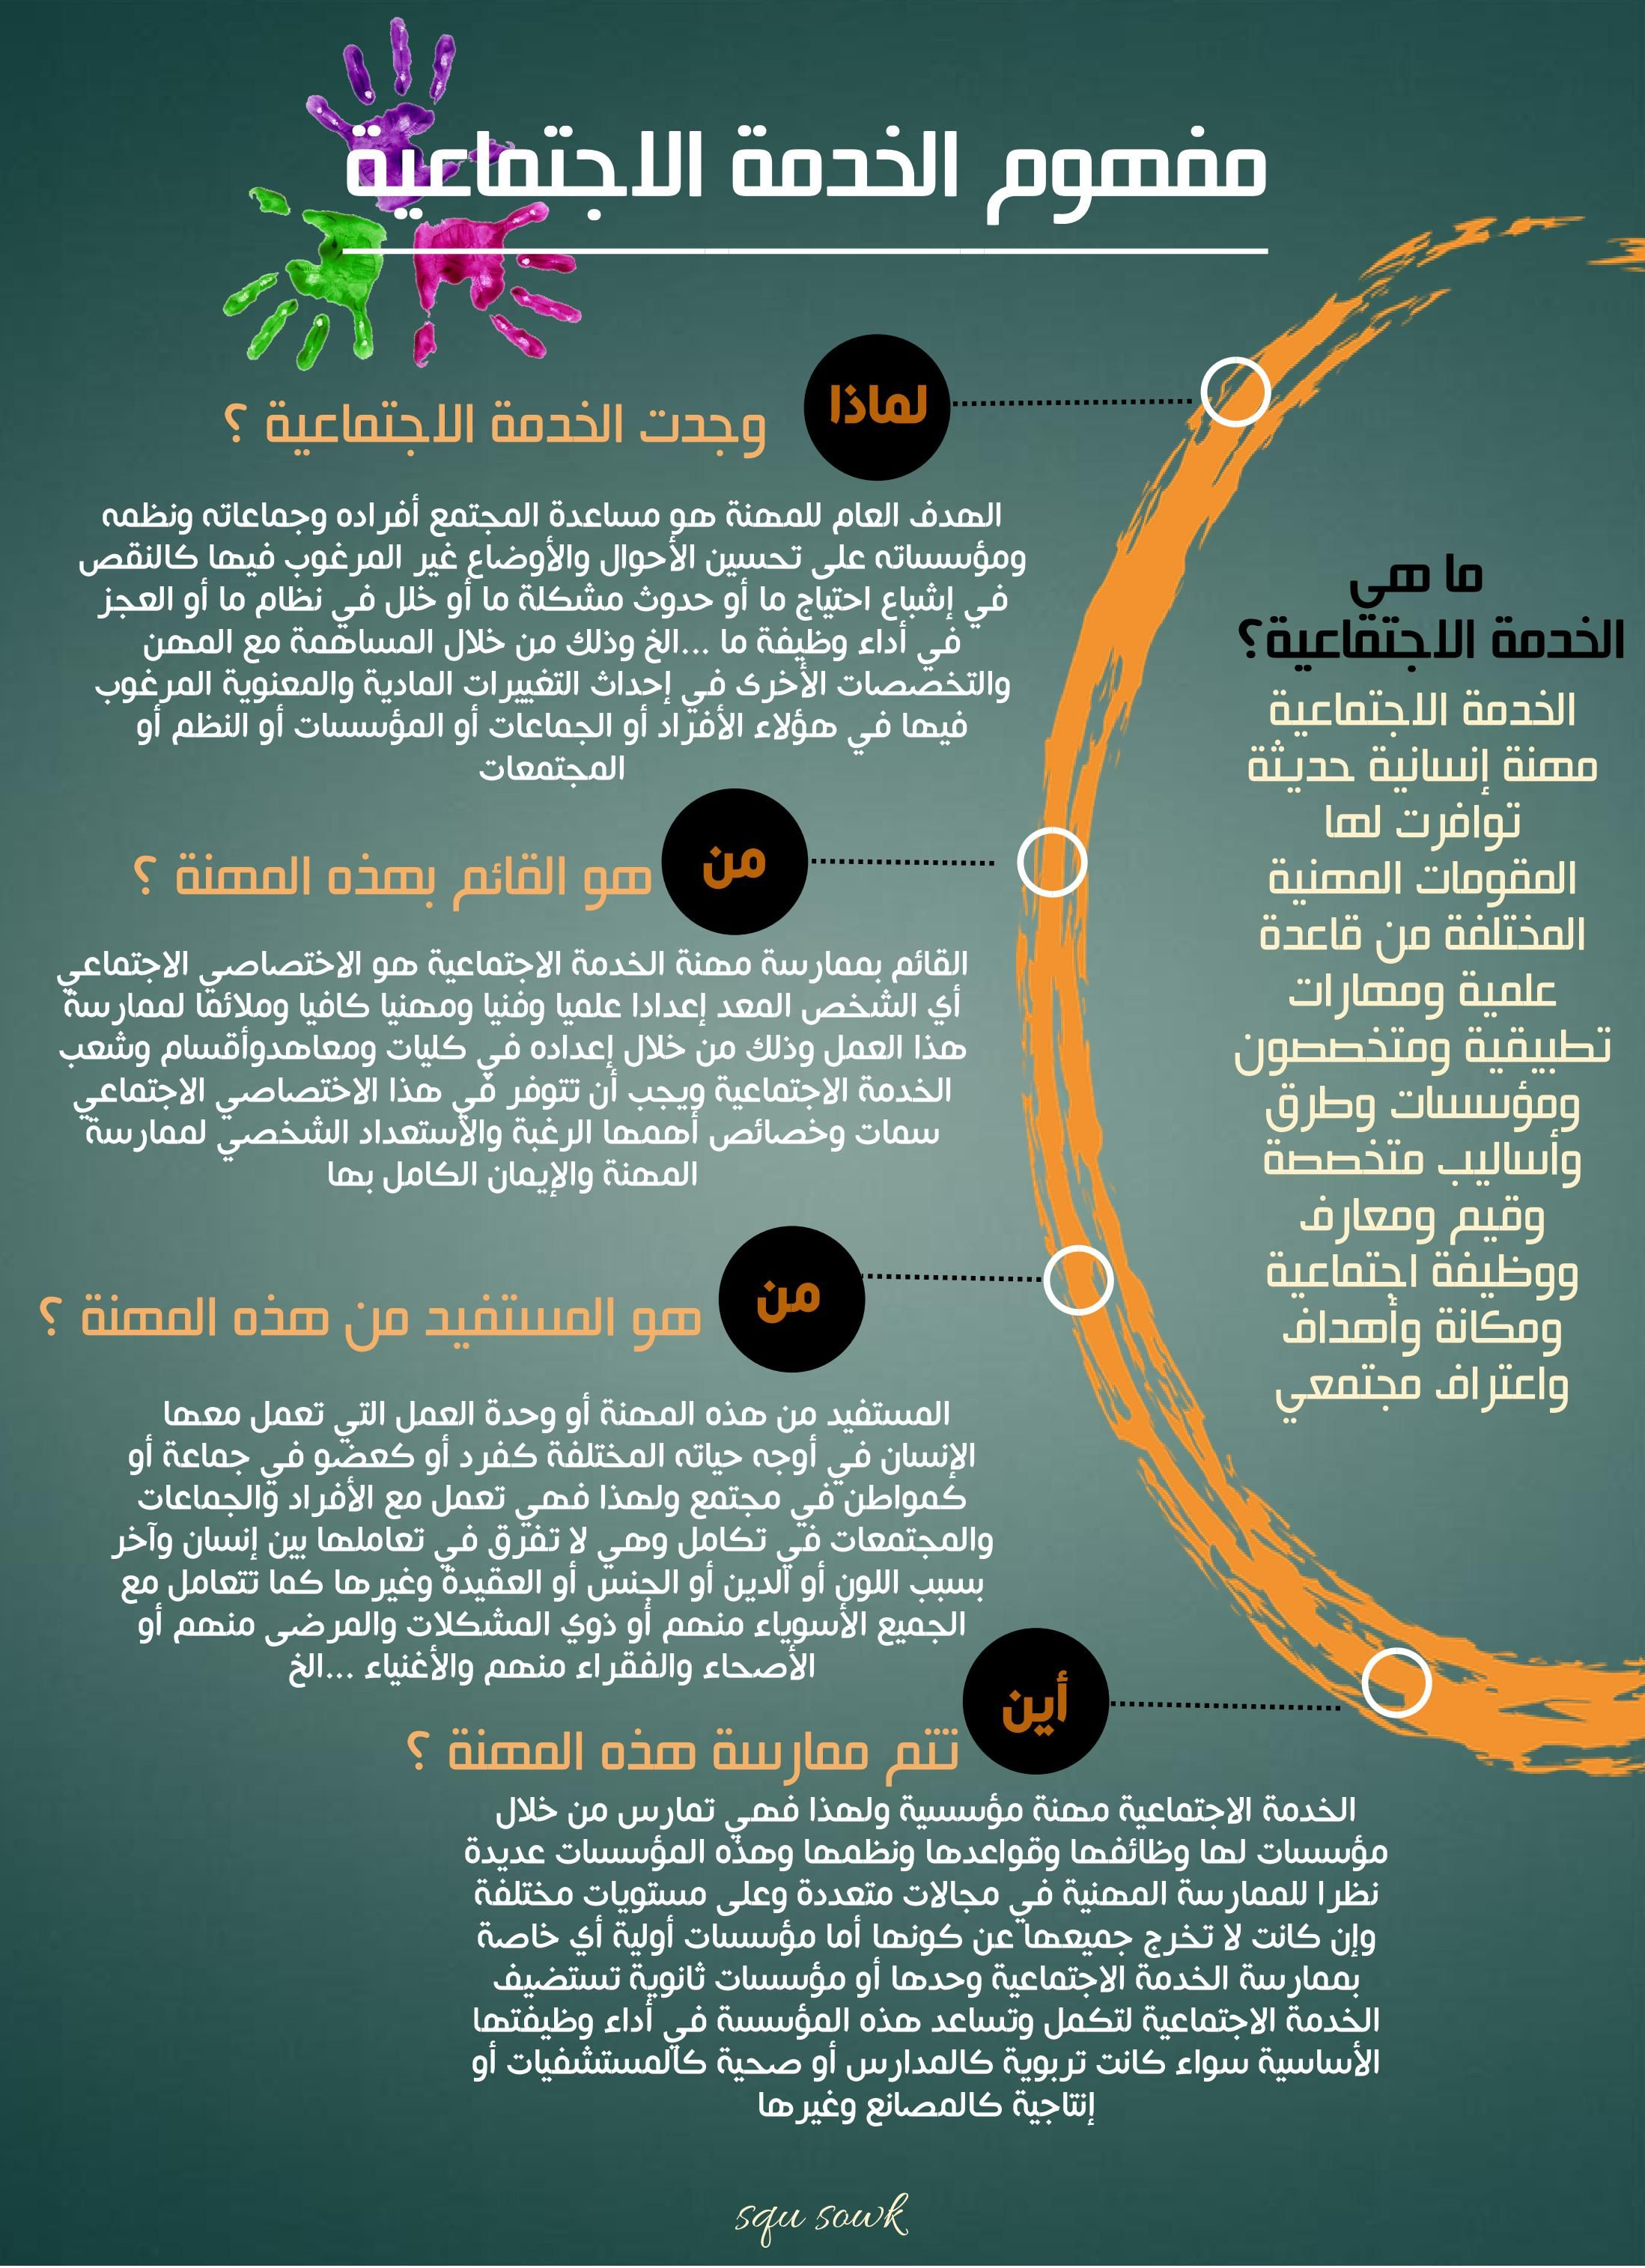 Pin By Squ Sowk On الخدمة الاجتماعية Science Social Worker Jig